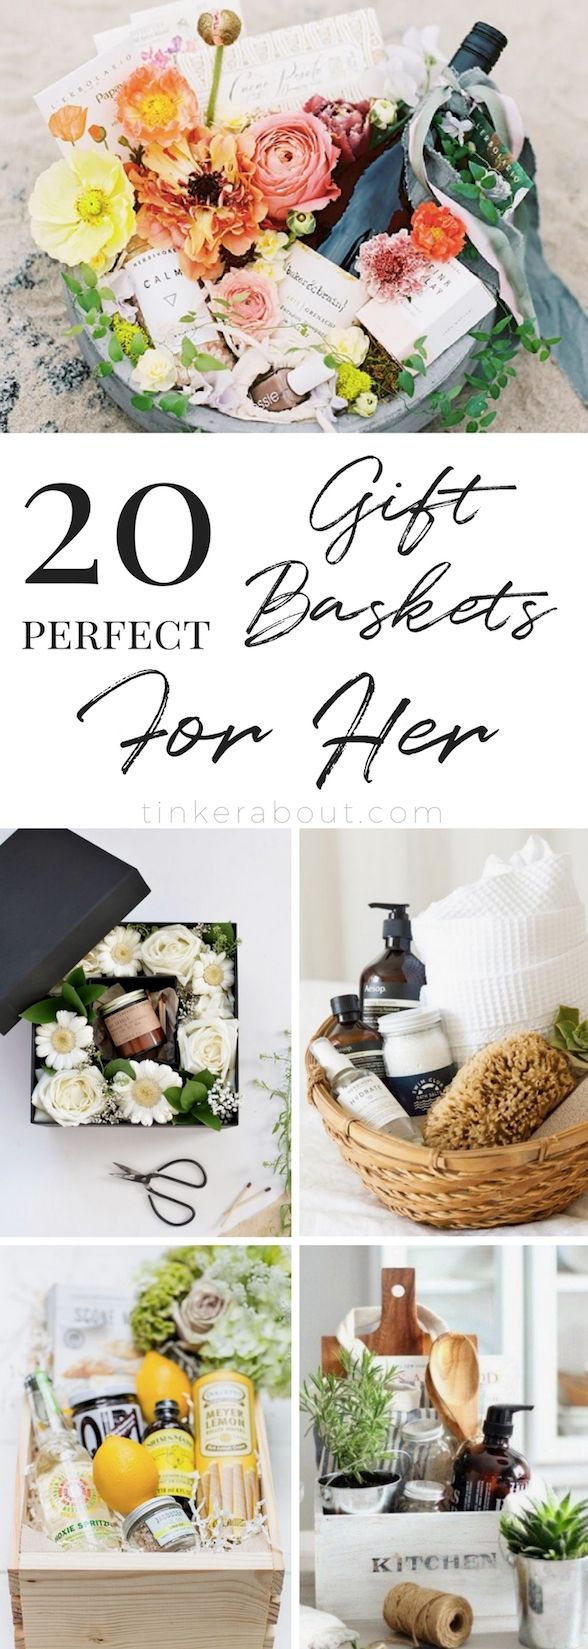 20 Gorgeous & Unique DIY Gift Basket Ideas for Women